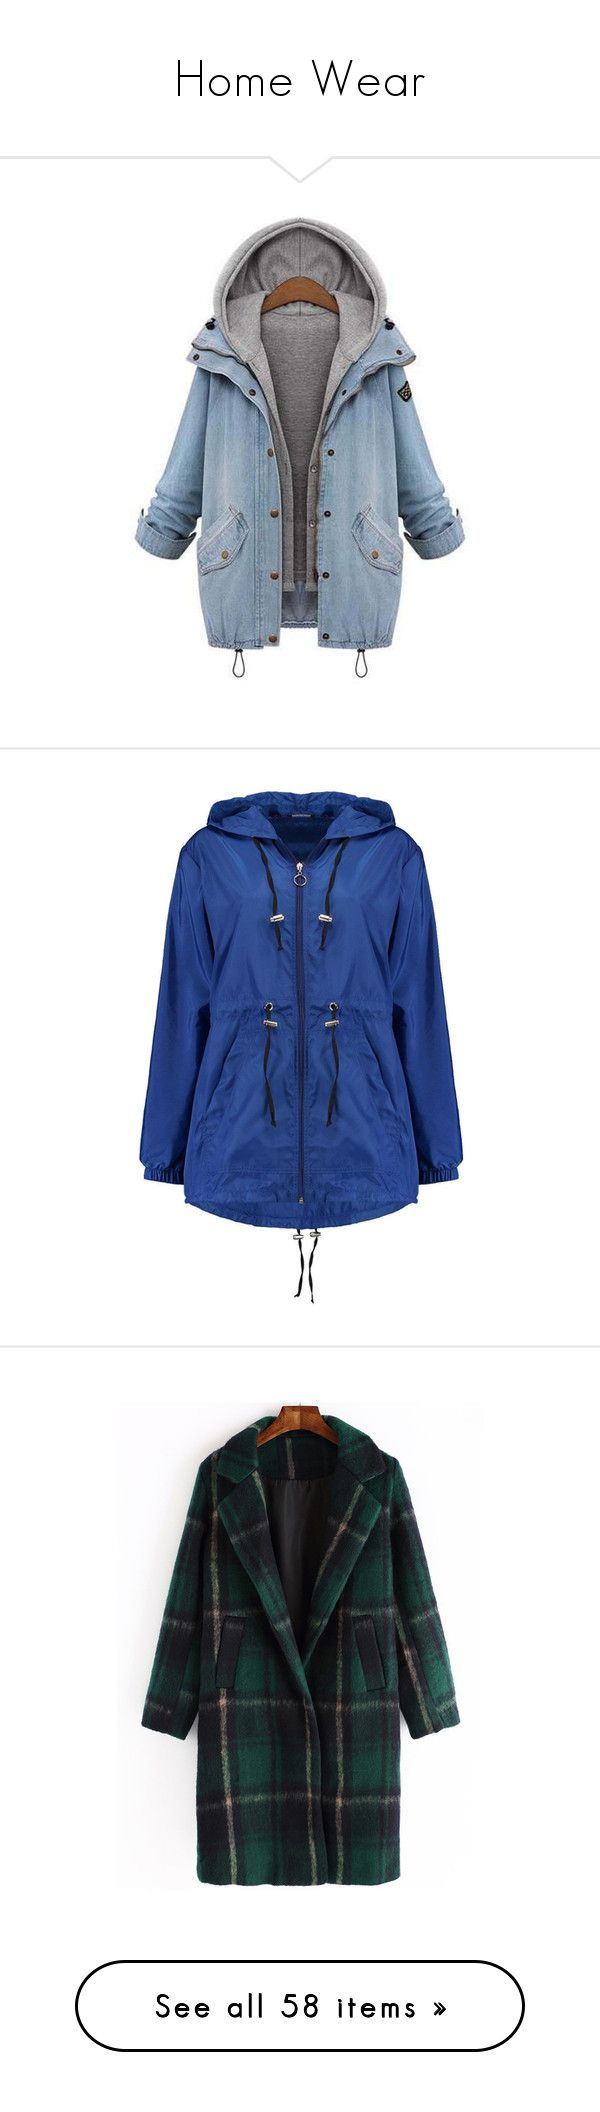 """Home Wear"" by suellenborinhoran ❤ liked on Polyvore featuring outerwear, coats, jackets, blue coat, denim coats, blue raincoat, hooded puffer coats, puffer coat, longline coat and hooded coat"